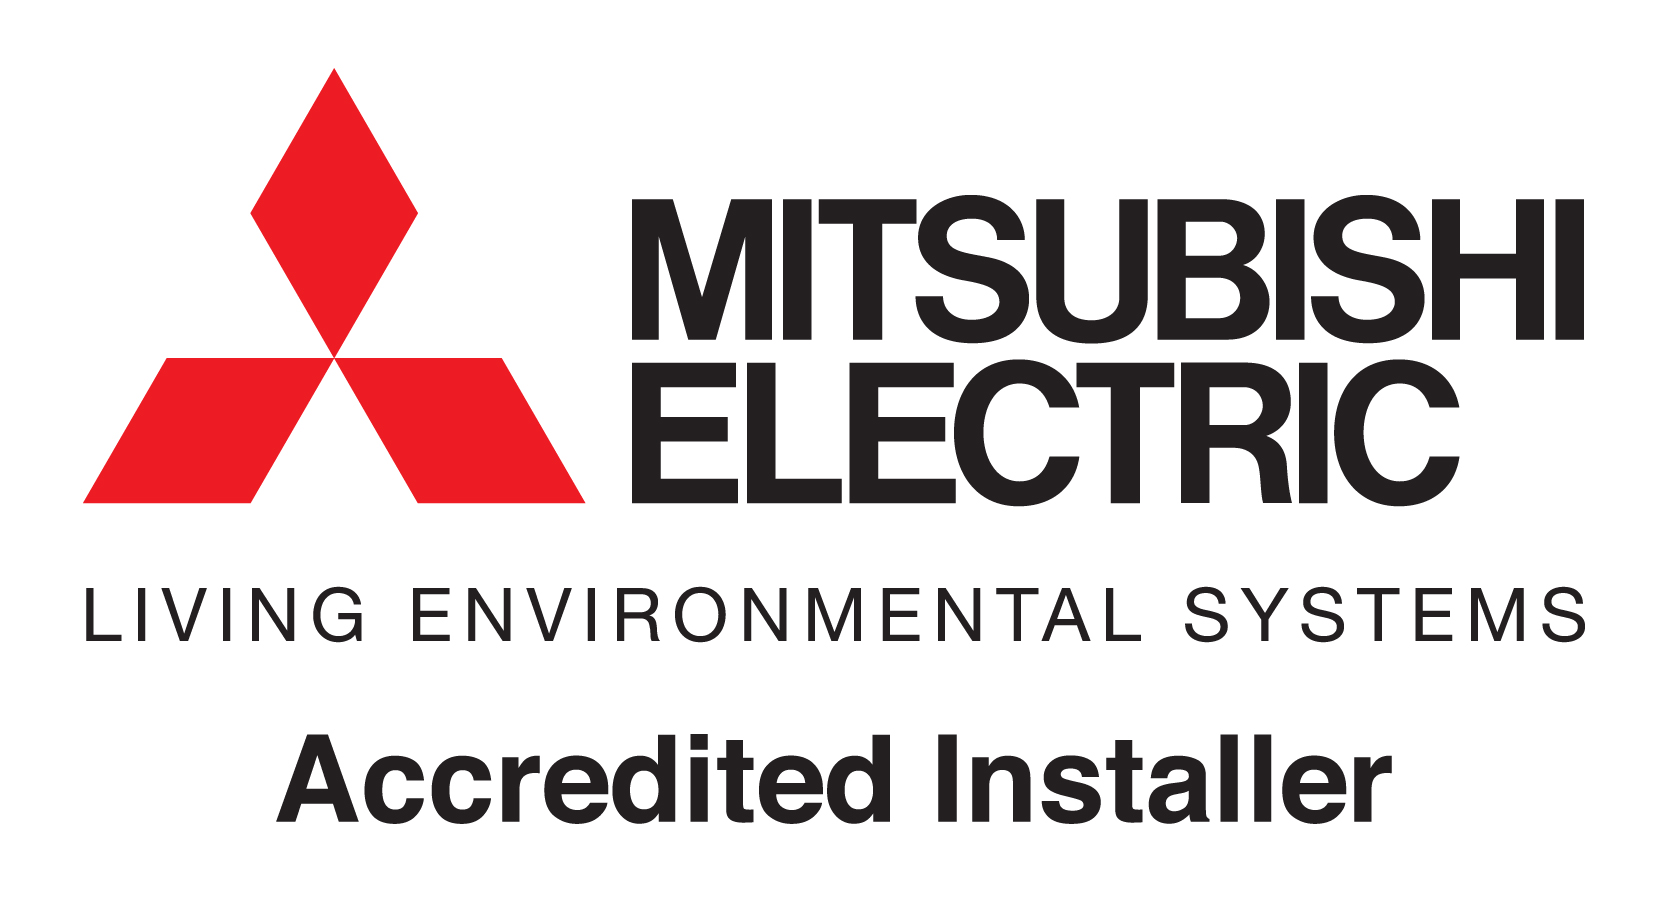 Mitsubishi Electric are always seeking to deliver the highest possible standards in equipment supply and workmanship.  The Mitsubishi Electric Partner Programme helps Partners to achieve the high standards of installation, commissioning and aftercare services expected by today's customers.The Programme also considers Health and Safety issues and Corporate Social Responsibility (CSR) policies to be extremely important and is why that, in addition to adhering to our technical standards our Partners are also required to uphold given Health & Safety issues and to abide by a set of CSR principles.